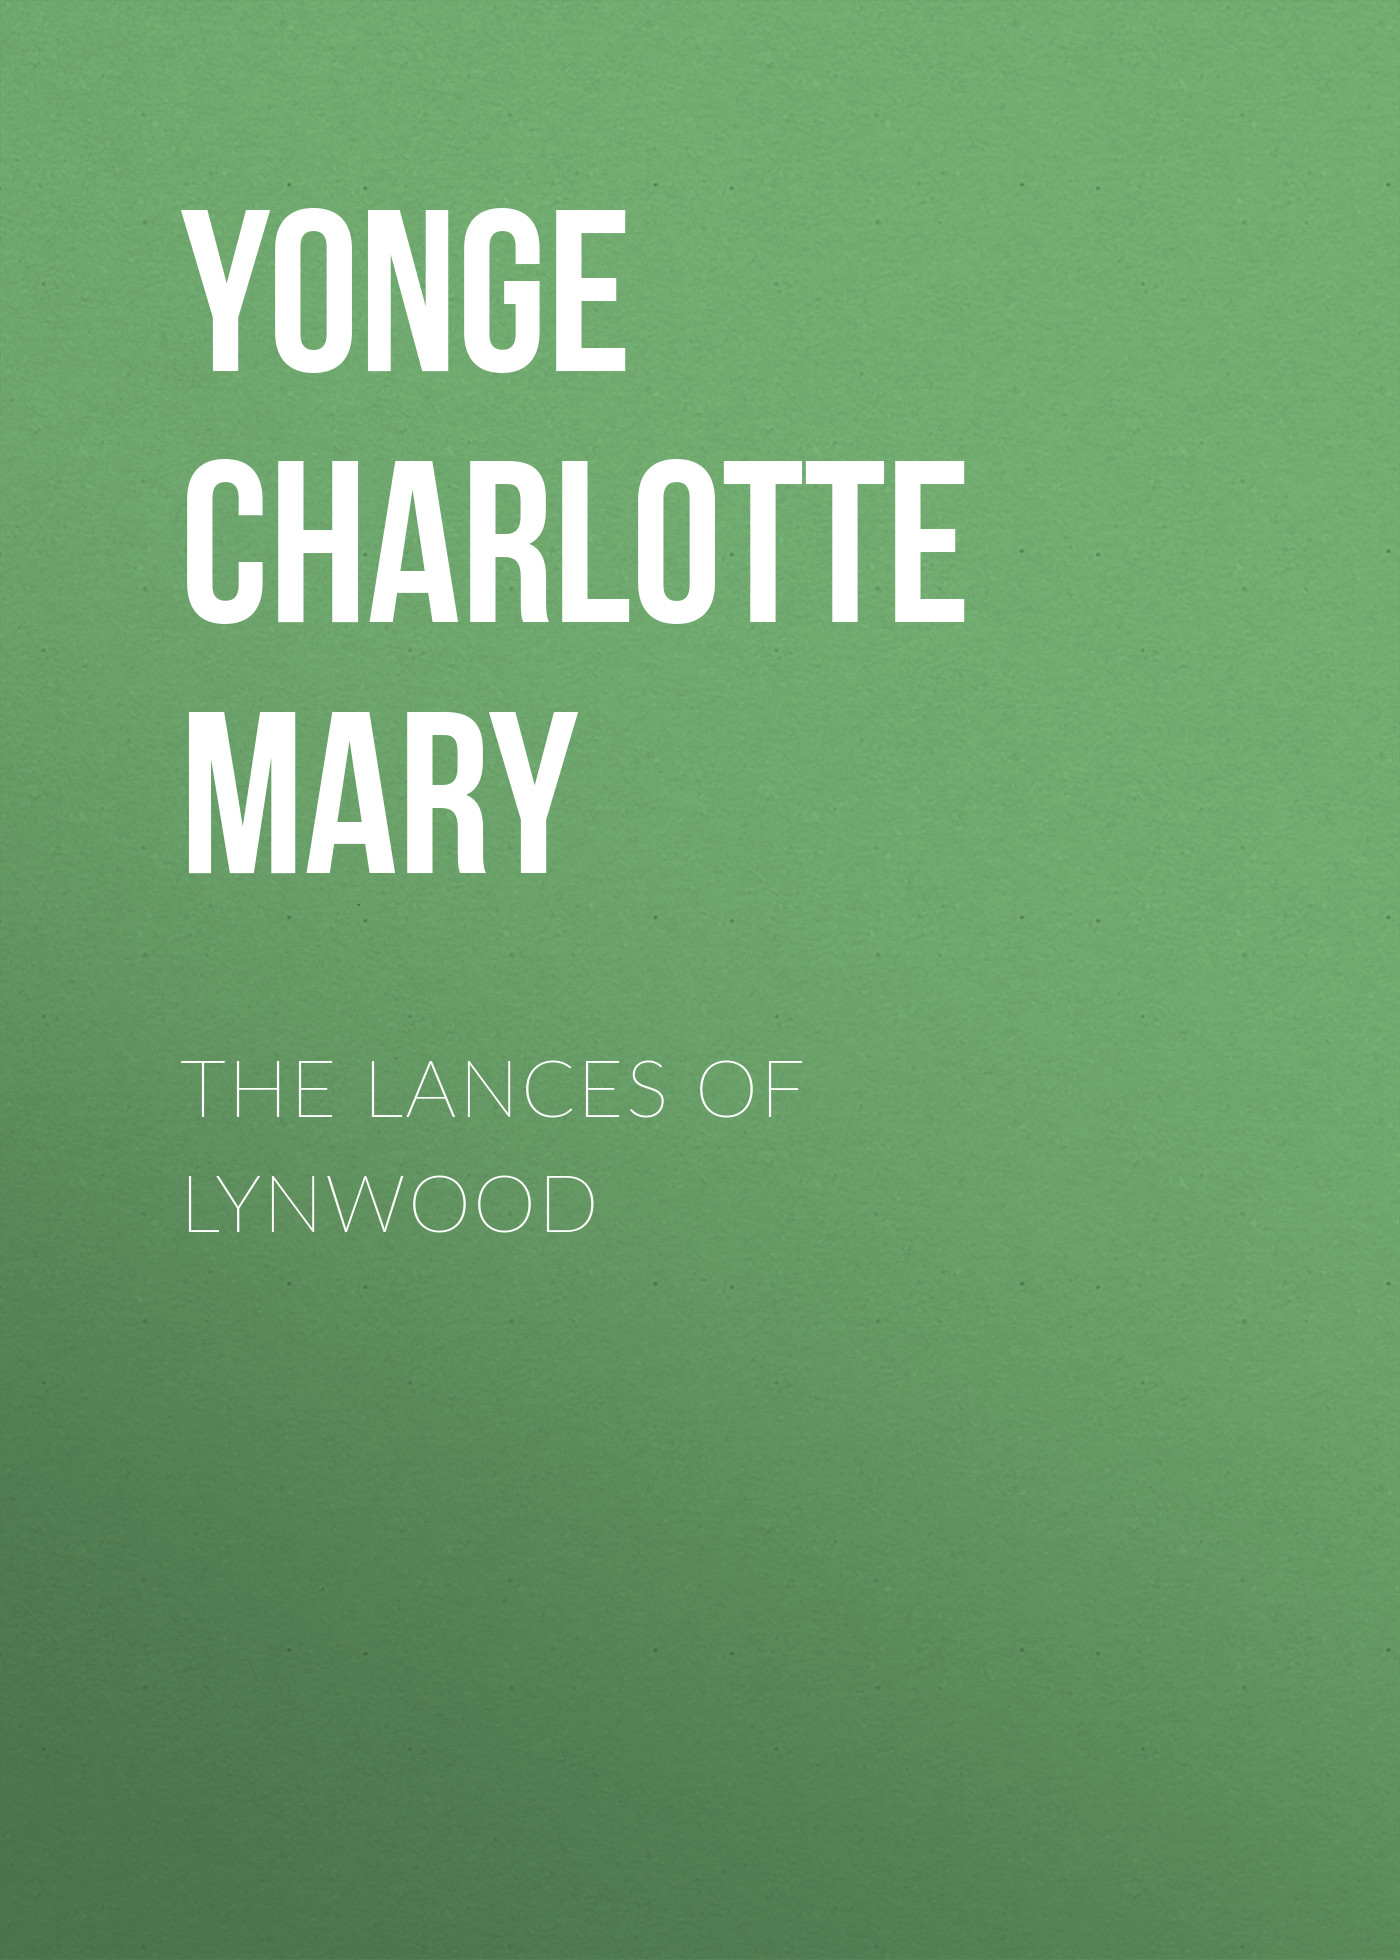 лучшая цена Yonge Charlotte Mary The Lances of Lynwood